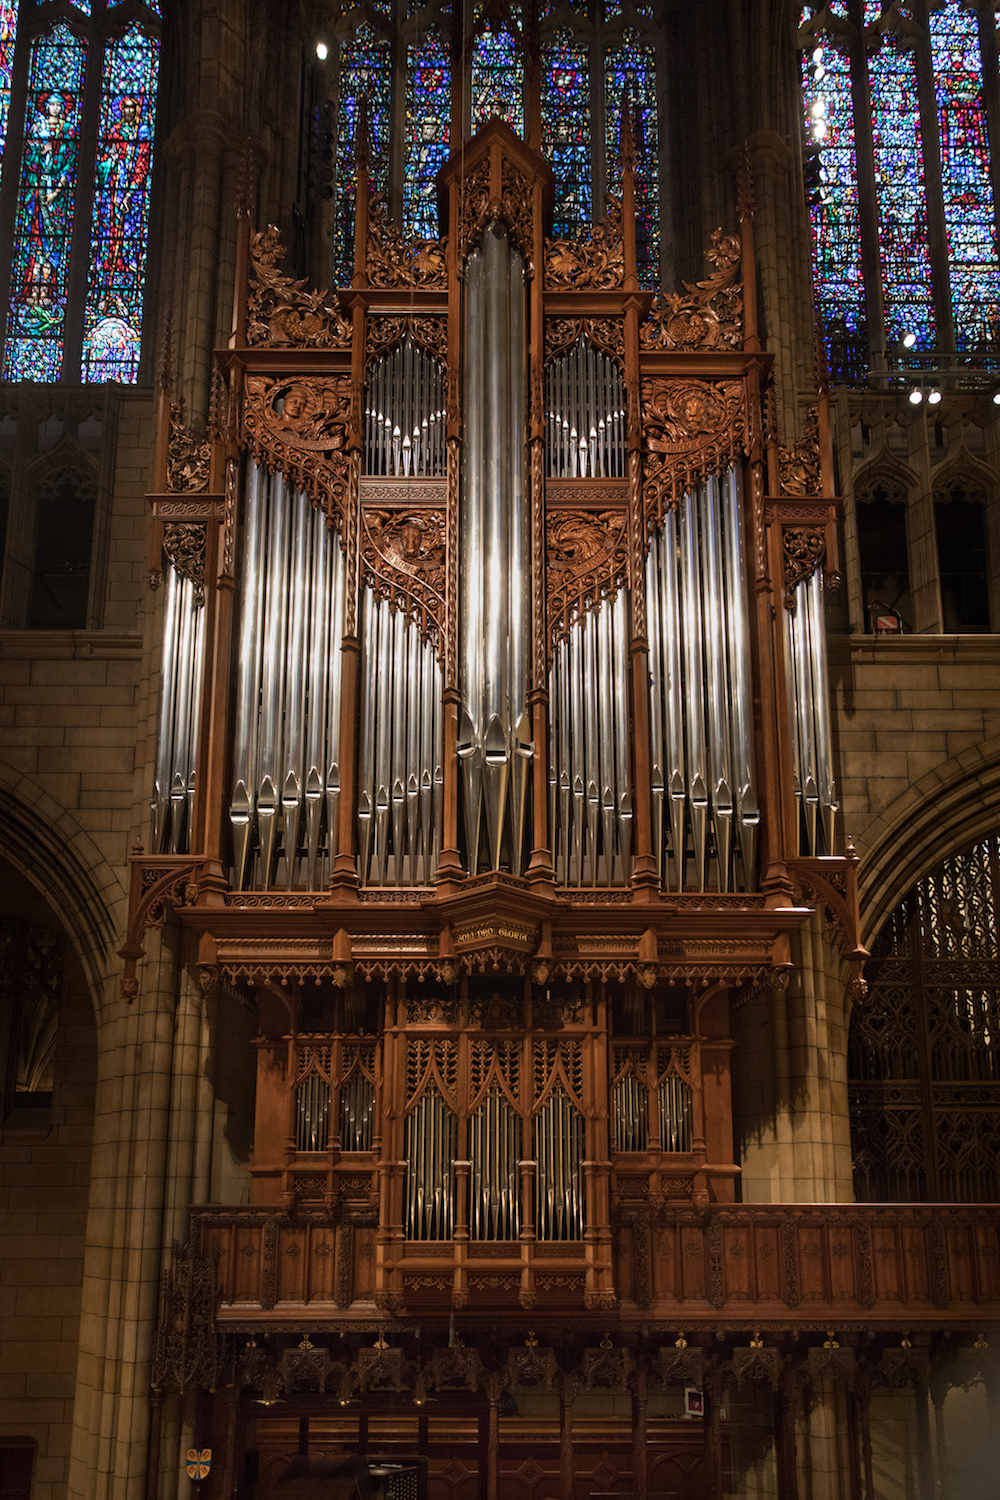 The Miller-Scott Organ. Photo by Ira Lippke.